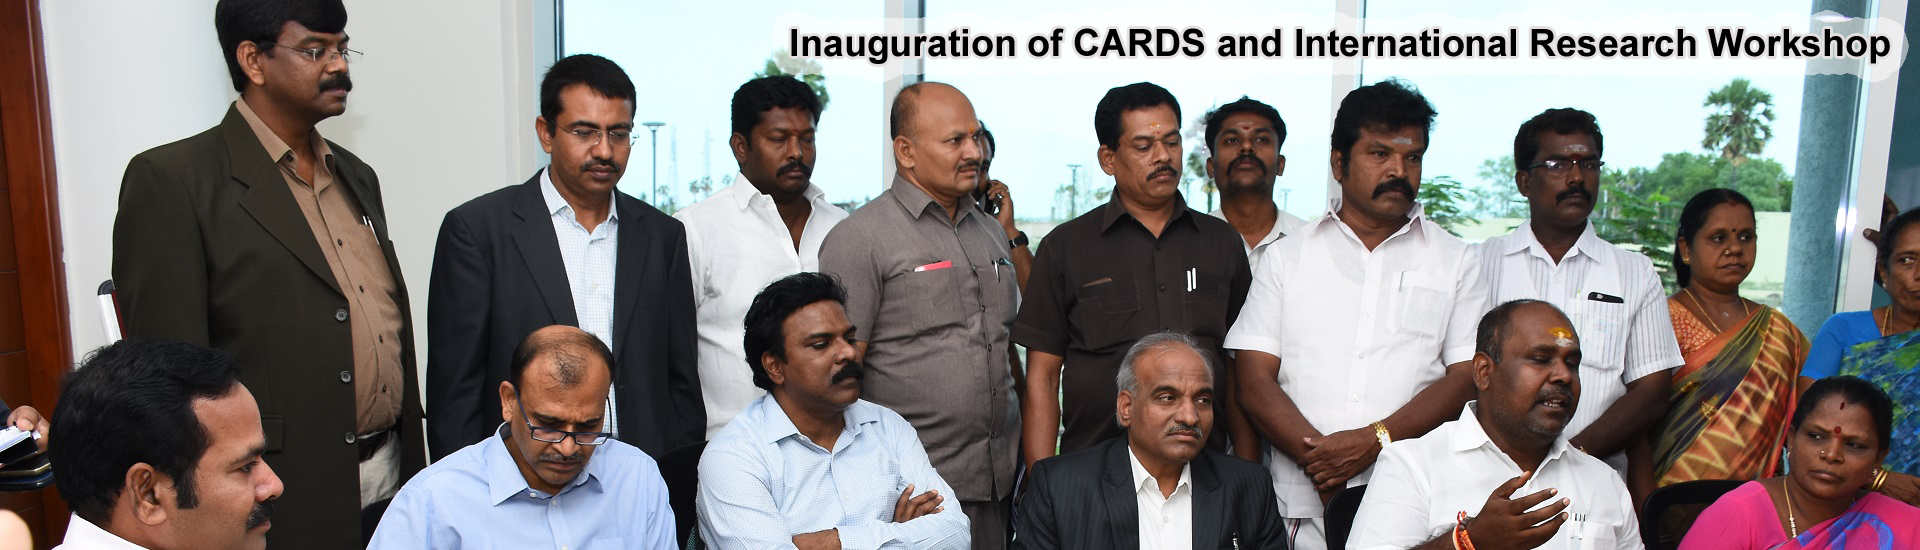 Inauguration of CARDS and International Research Workshop